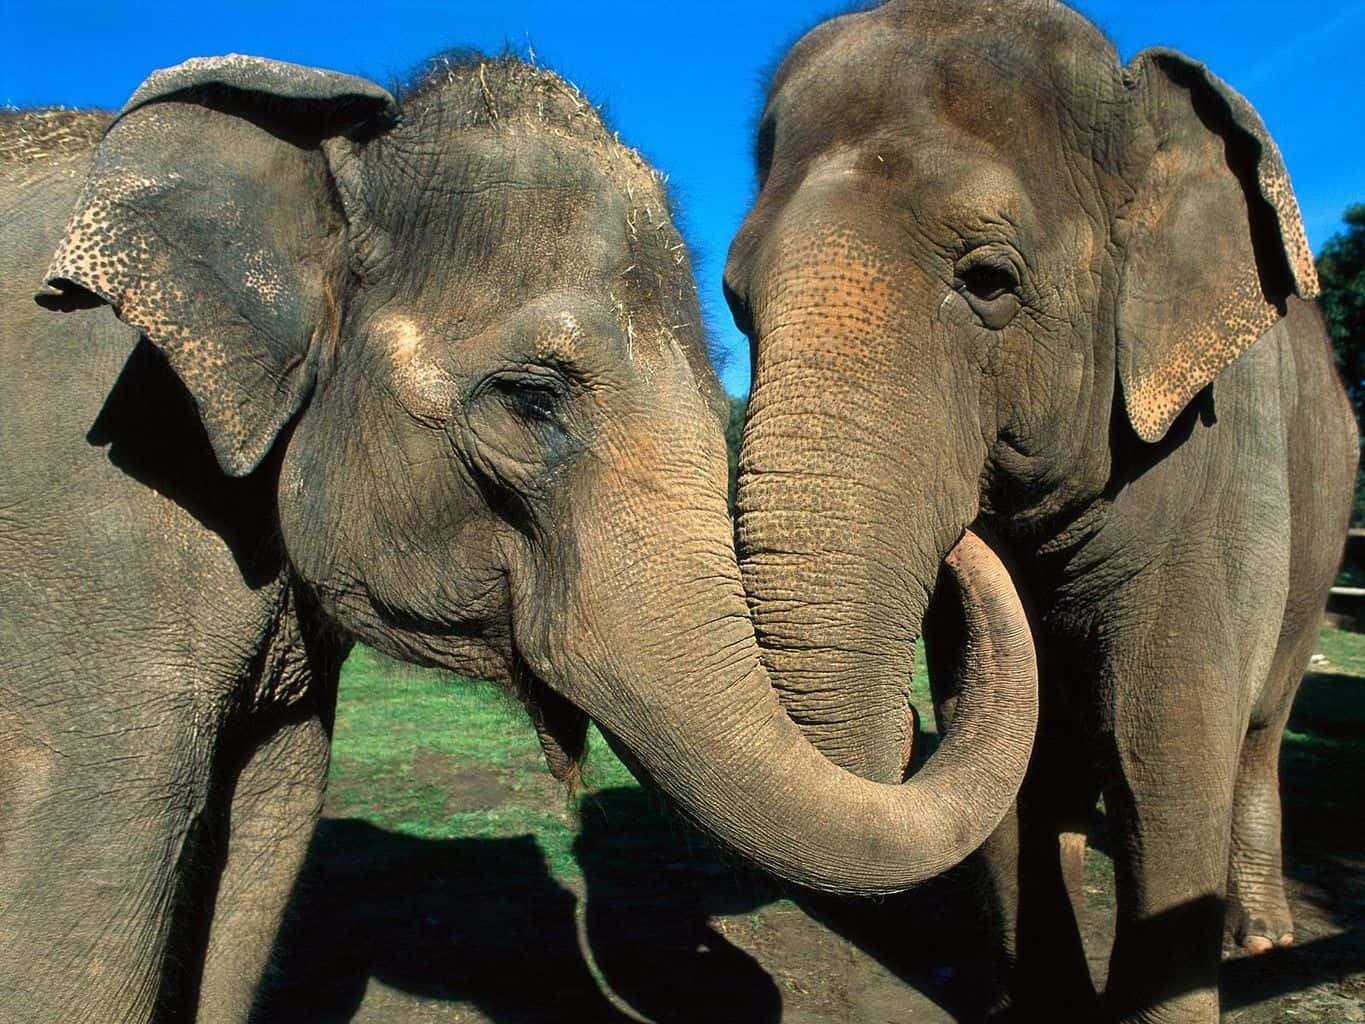 two elephants reunite after 20 years apart